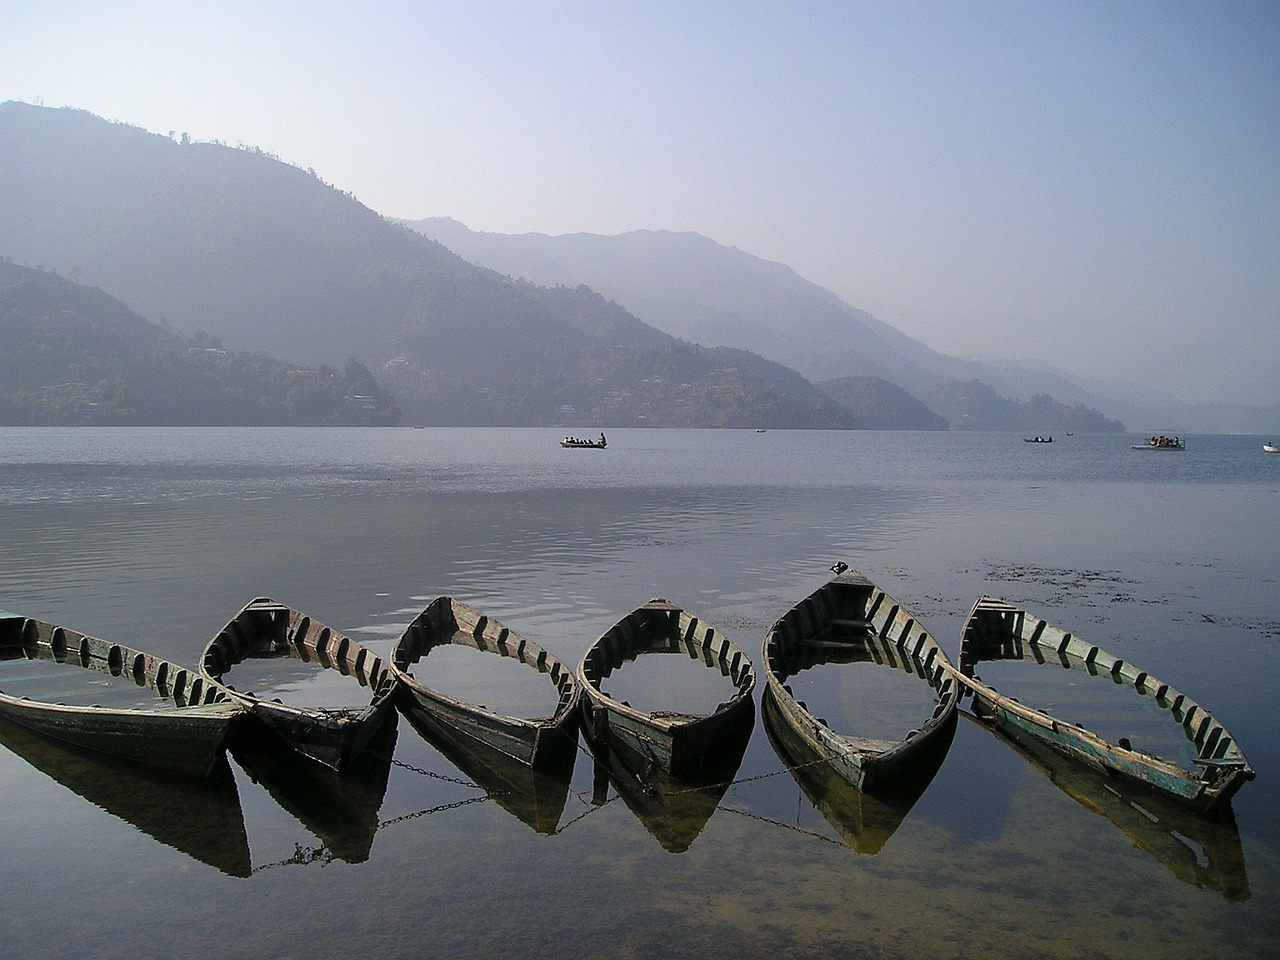 nepal boats lake free photo